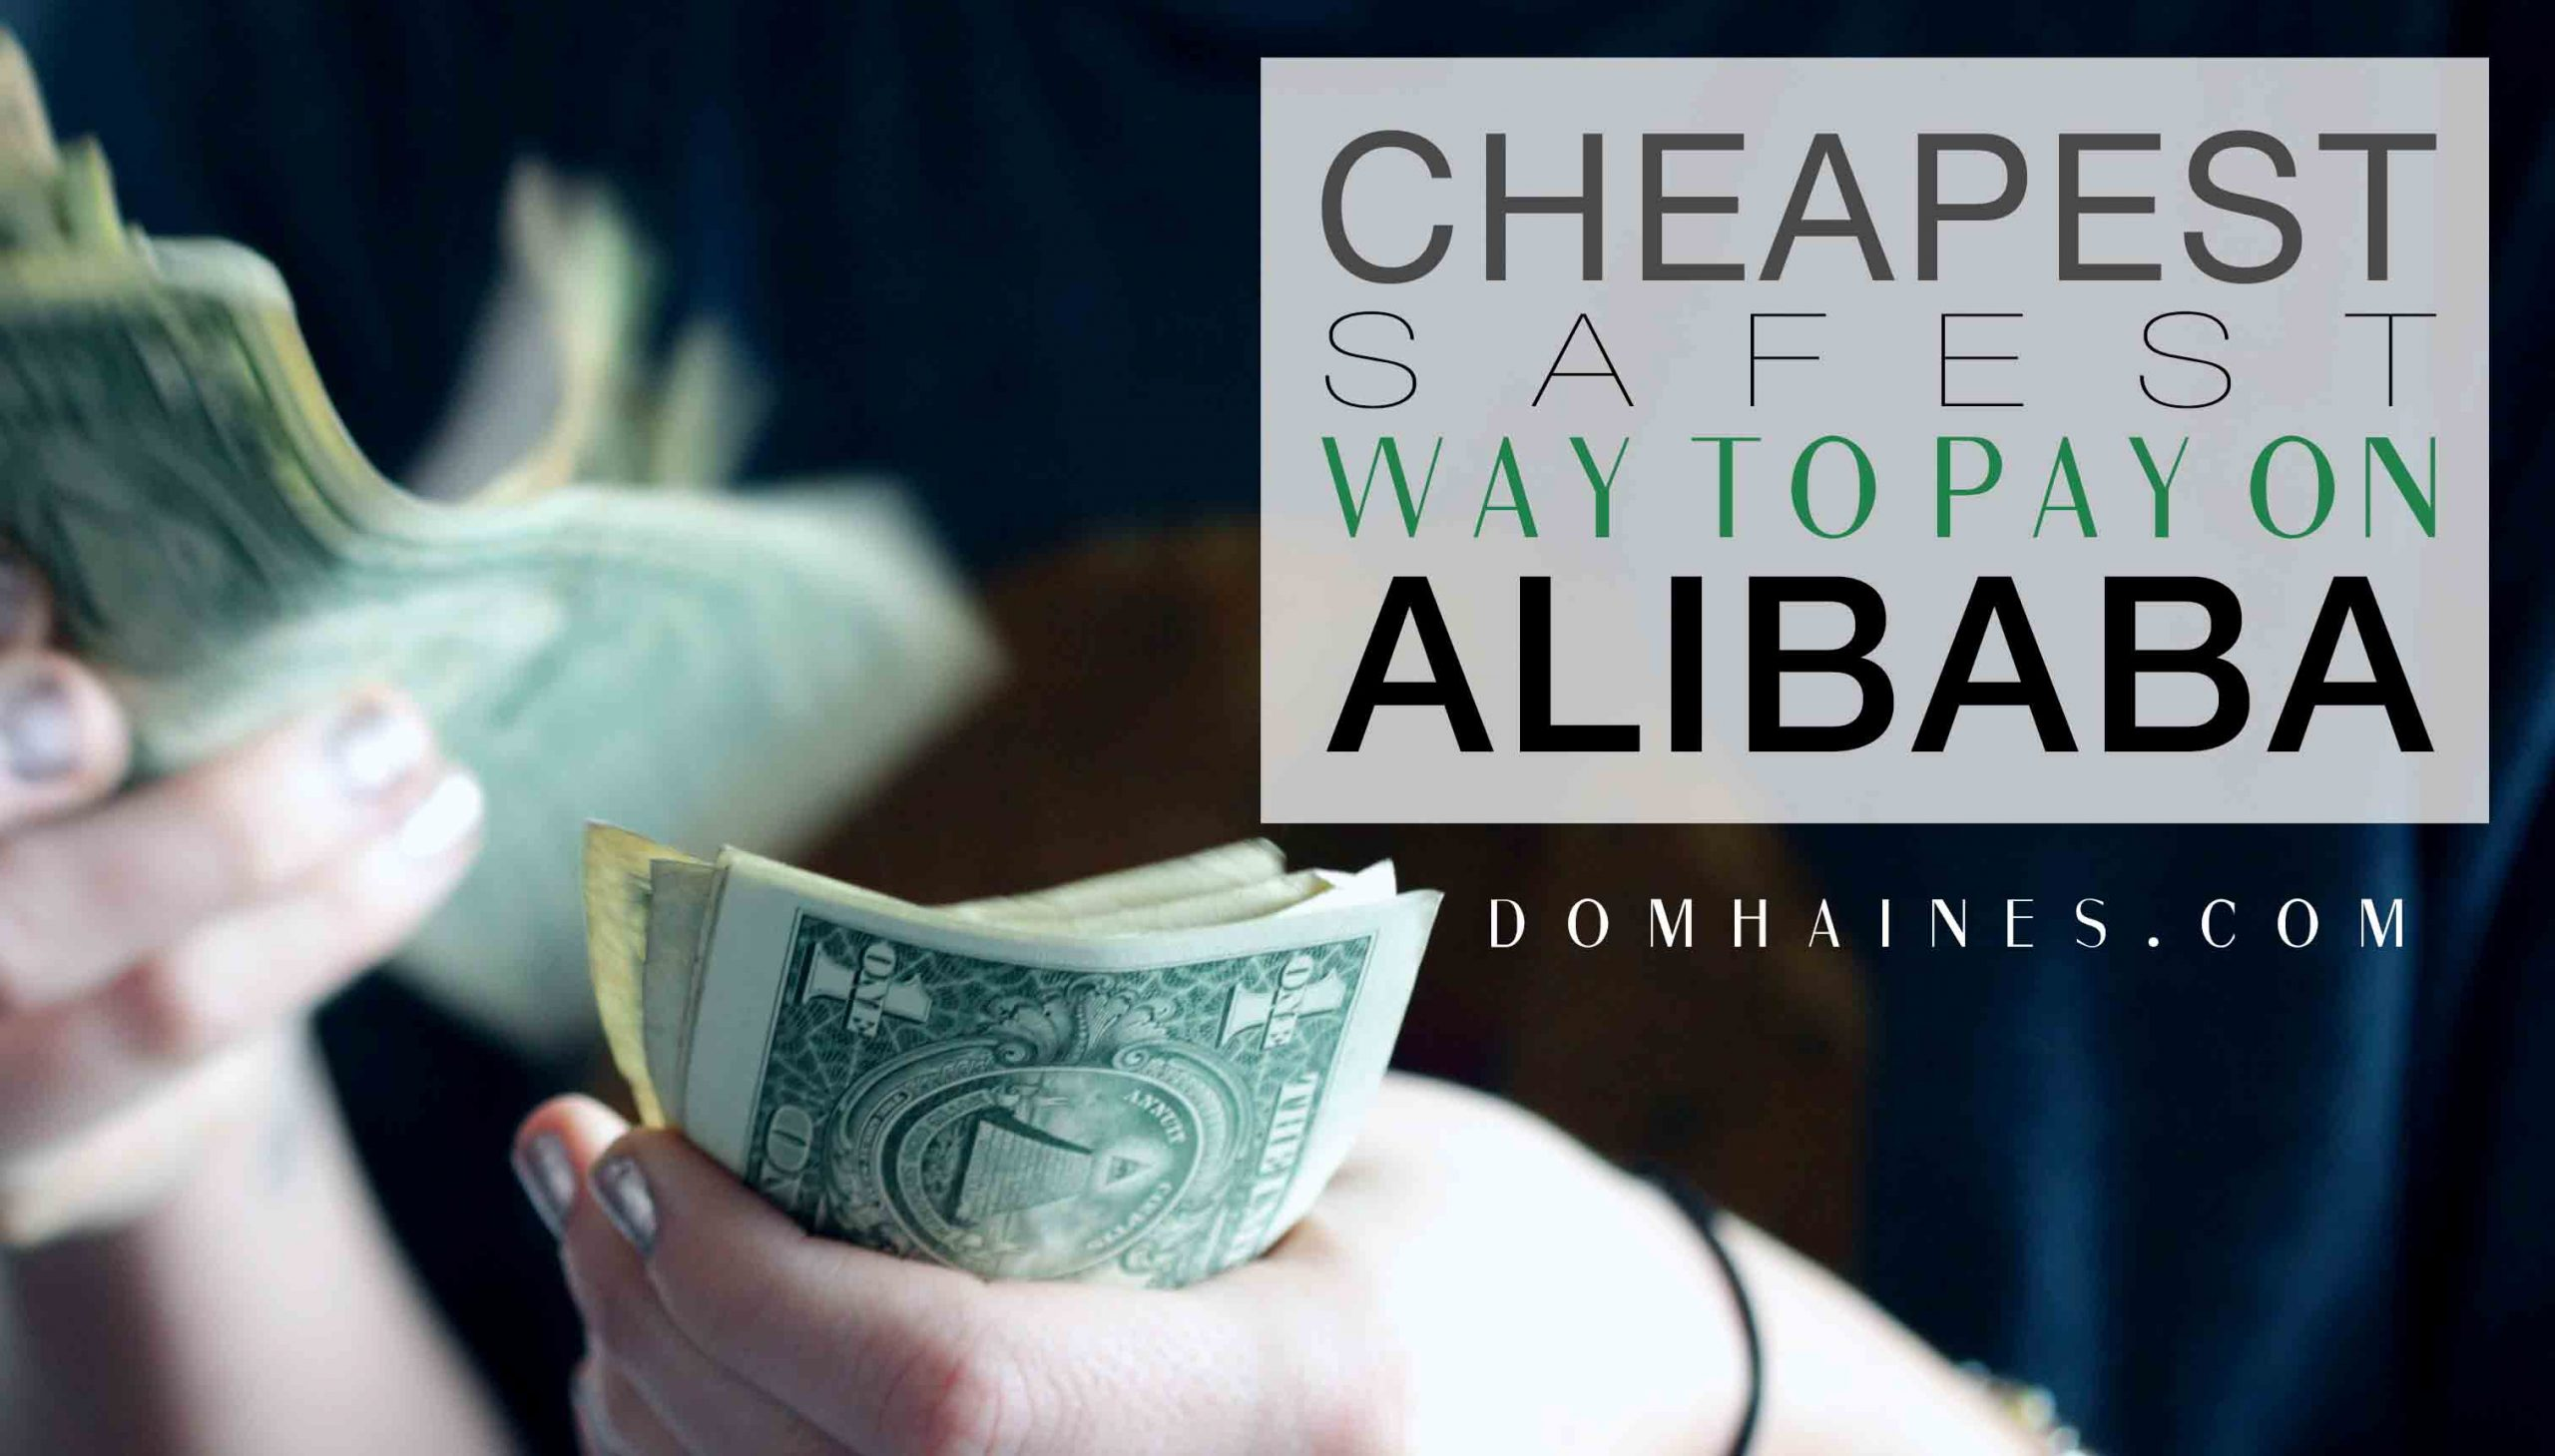 The Cheapest and Safest Way to Pay on Alibaba: TransferWise